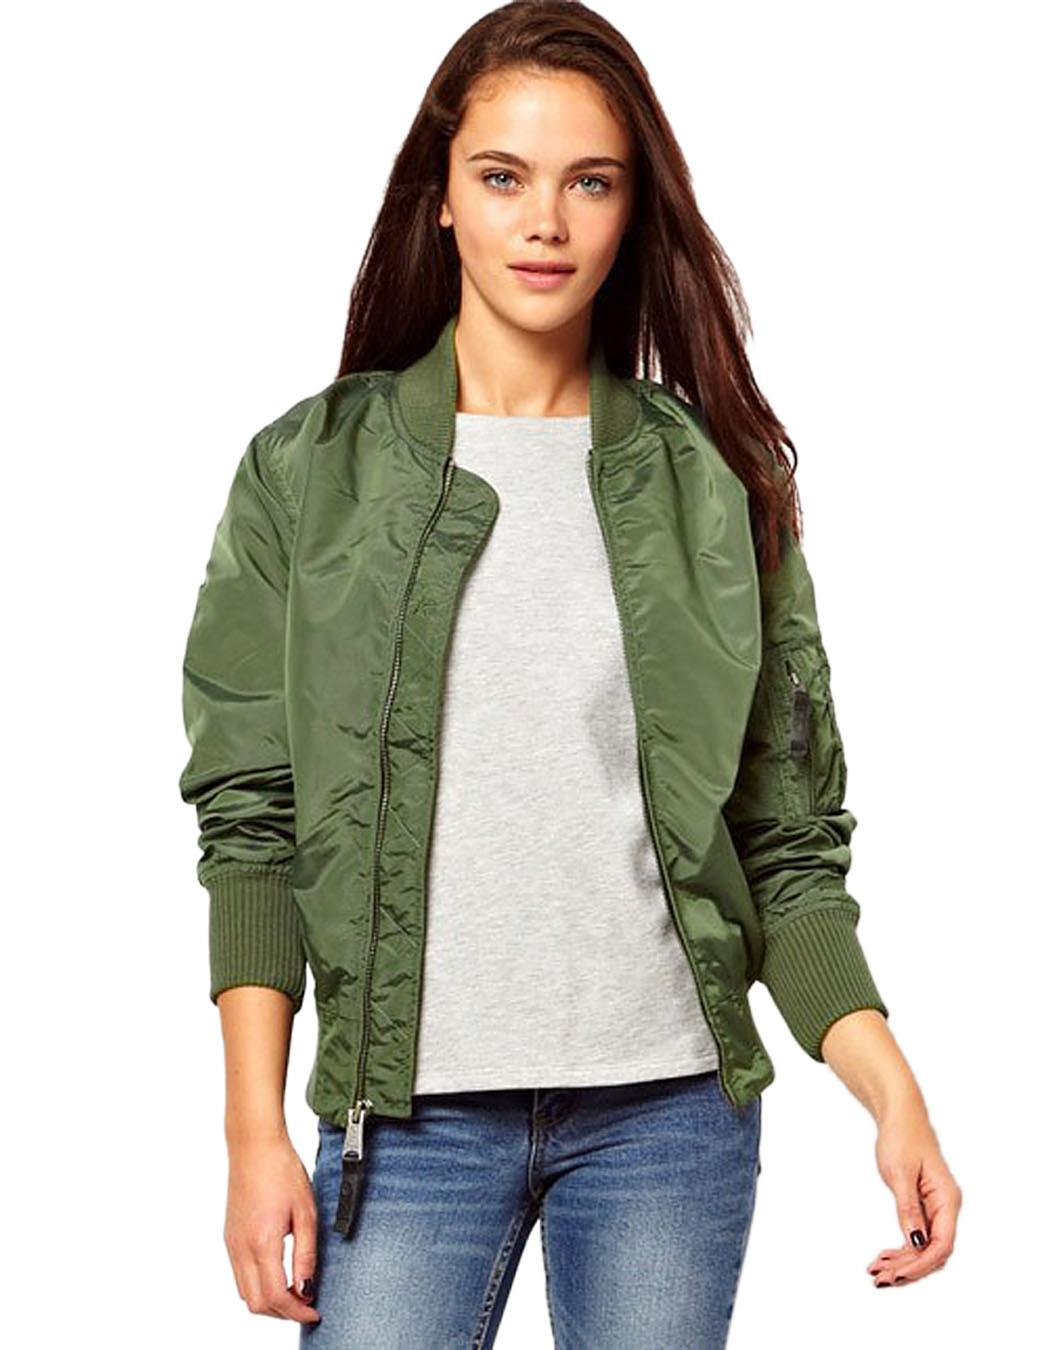 Cheap Jackets For Girls | Jackets Review